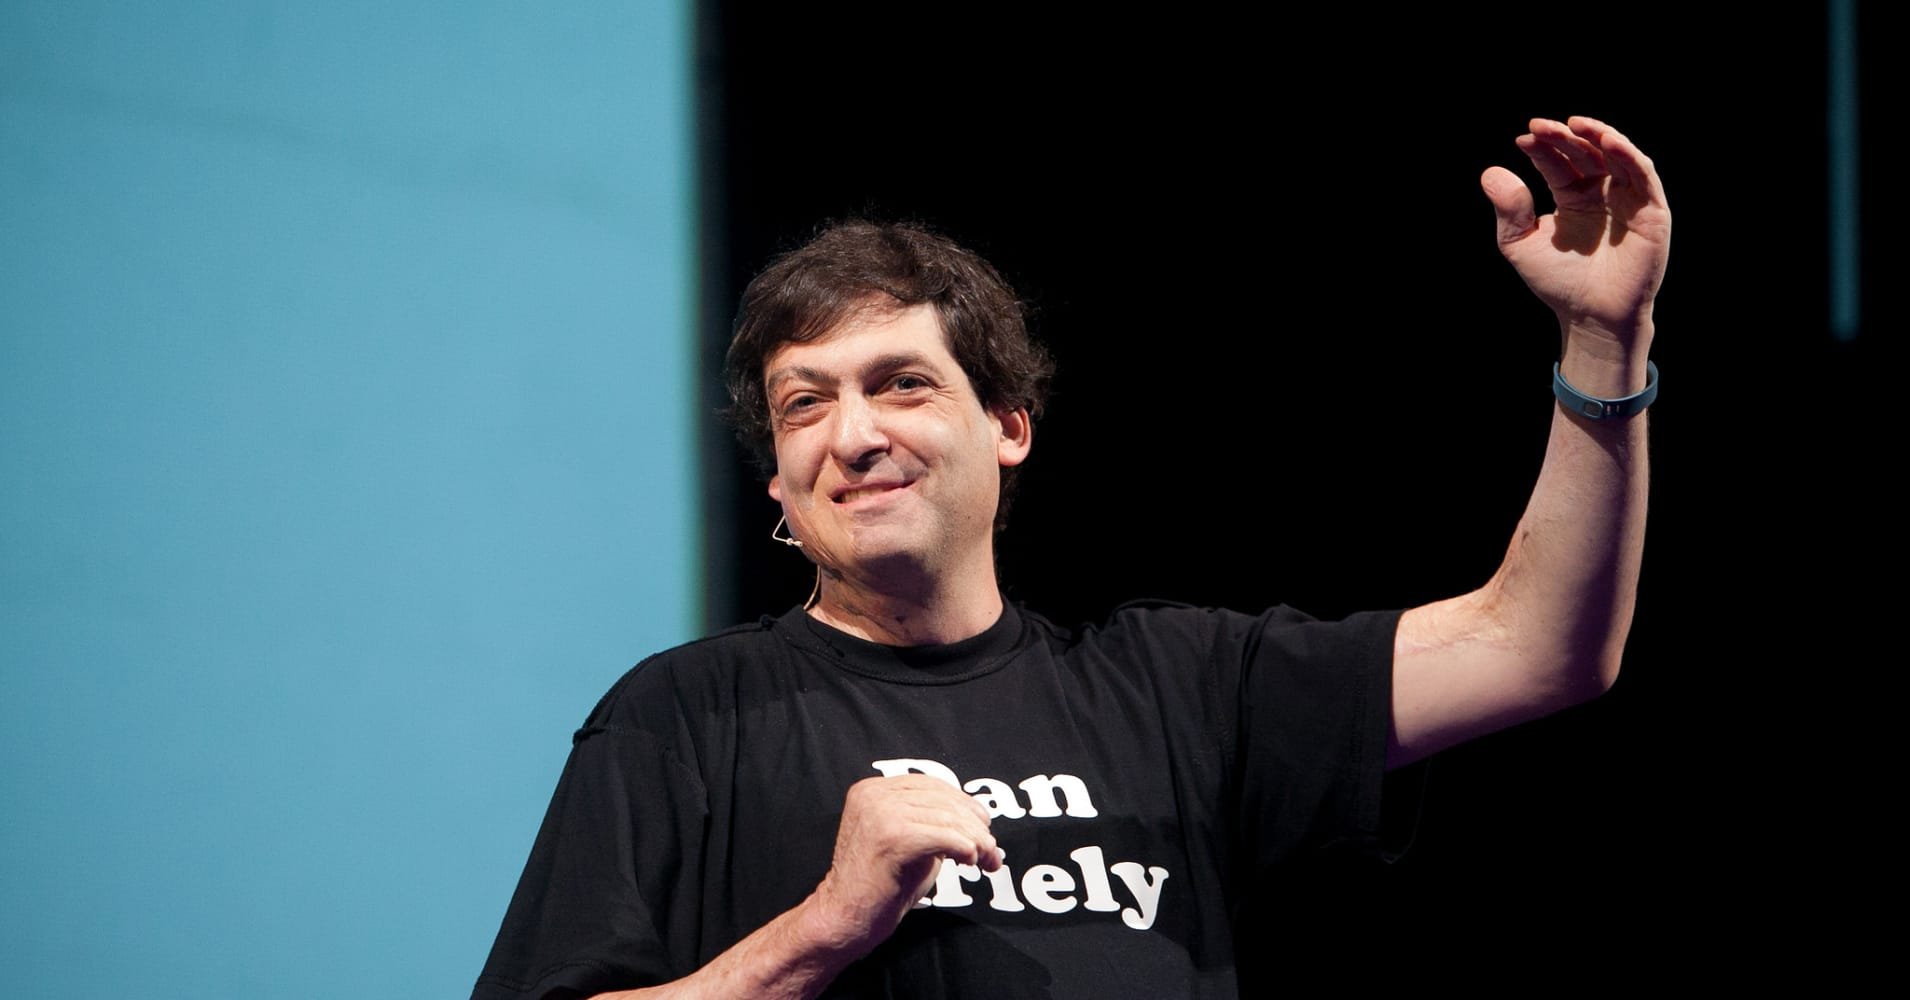 Dan Ariely, behavioral economist and psychologist, says money isn't the only thing that motivates workers.